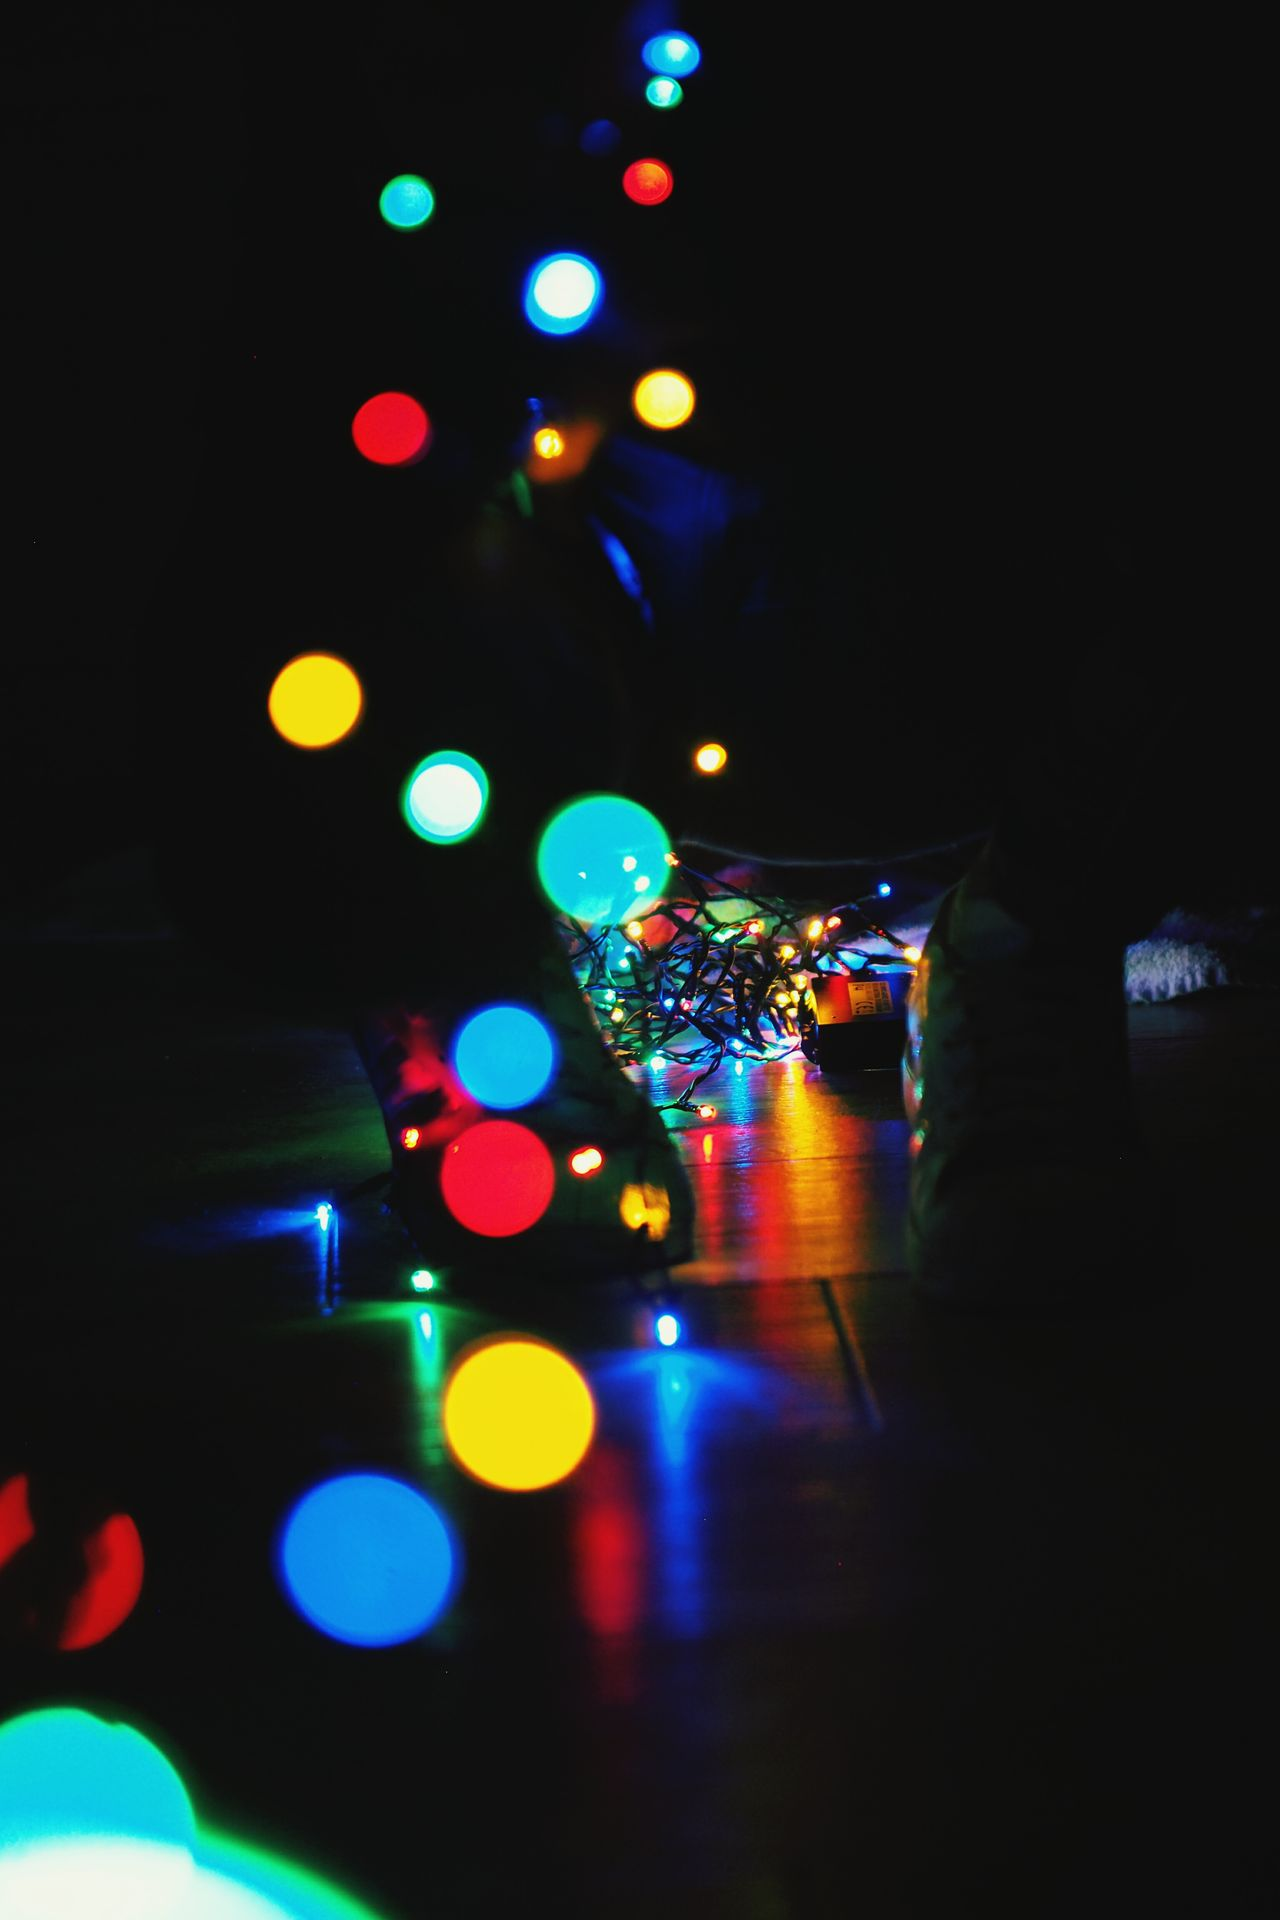 Jugando con lices Illuminated Multi Colored Dark Nightlife Indoors  No People Technology Event Night Close-up Shoes Bokeh Bokeh Lights Reflection Colors Crhistmas Light And Shadow Circle Circle Of Light Circles Pattern Multicolor Legs